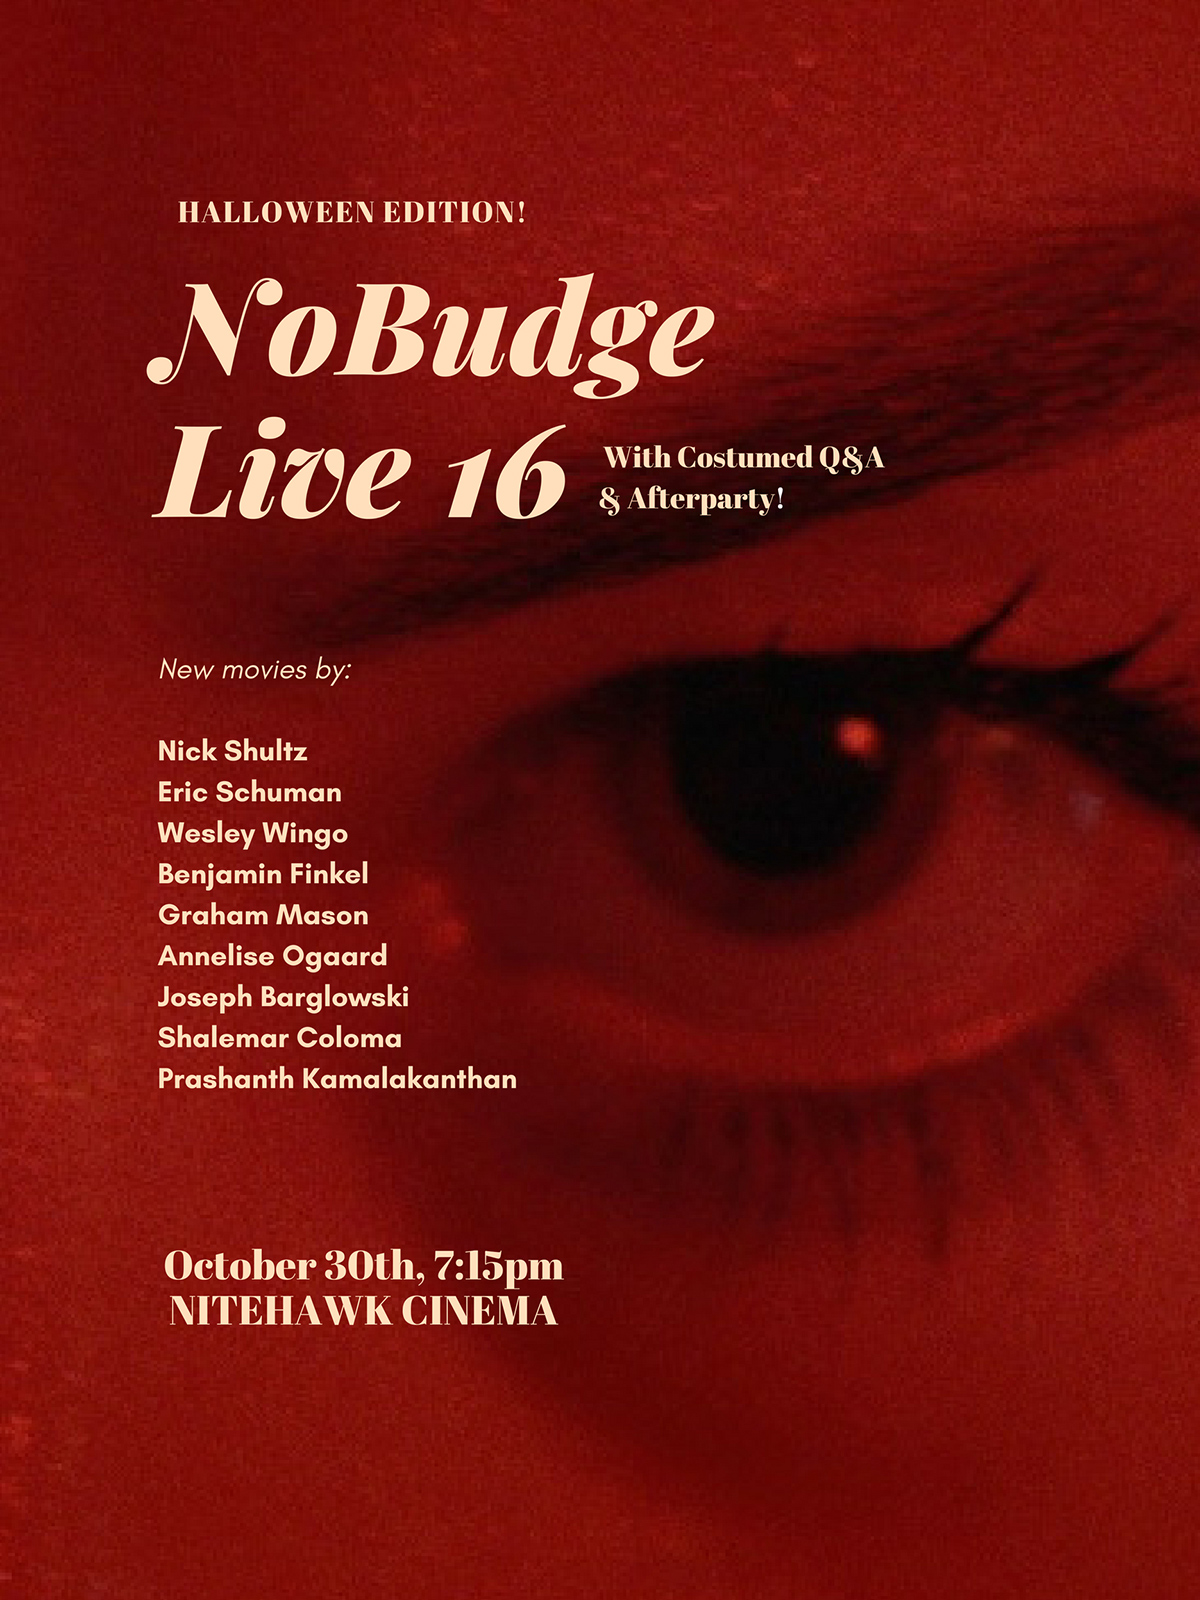 Poster for NoBudge Live #16: Halloween Edition